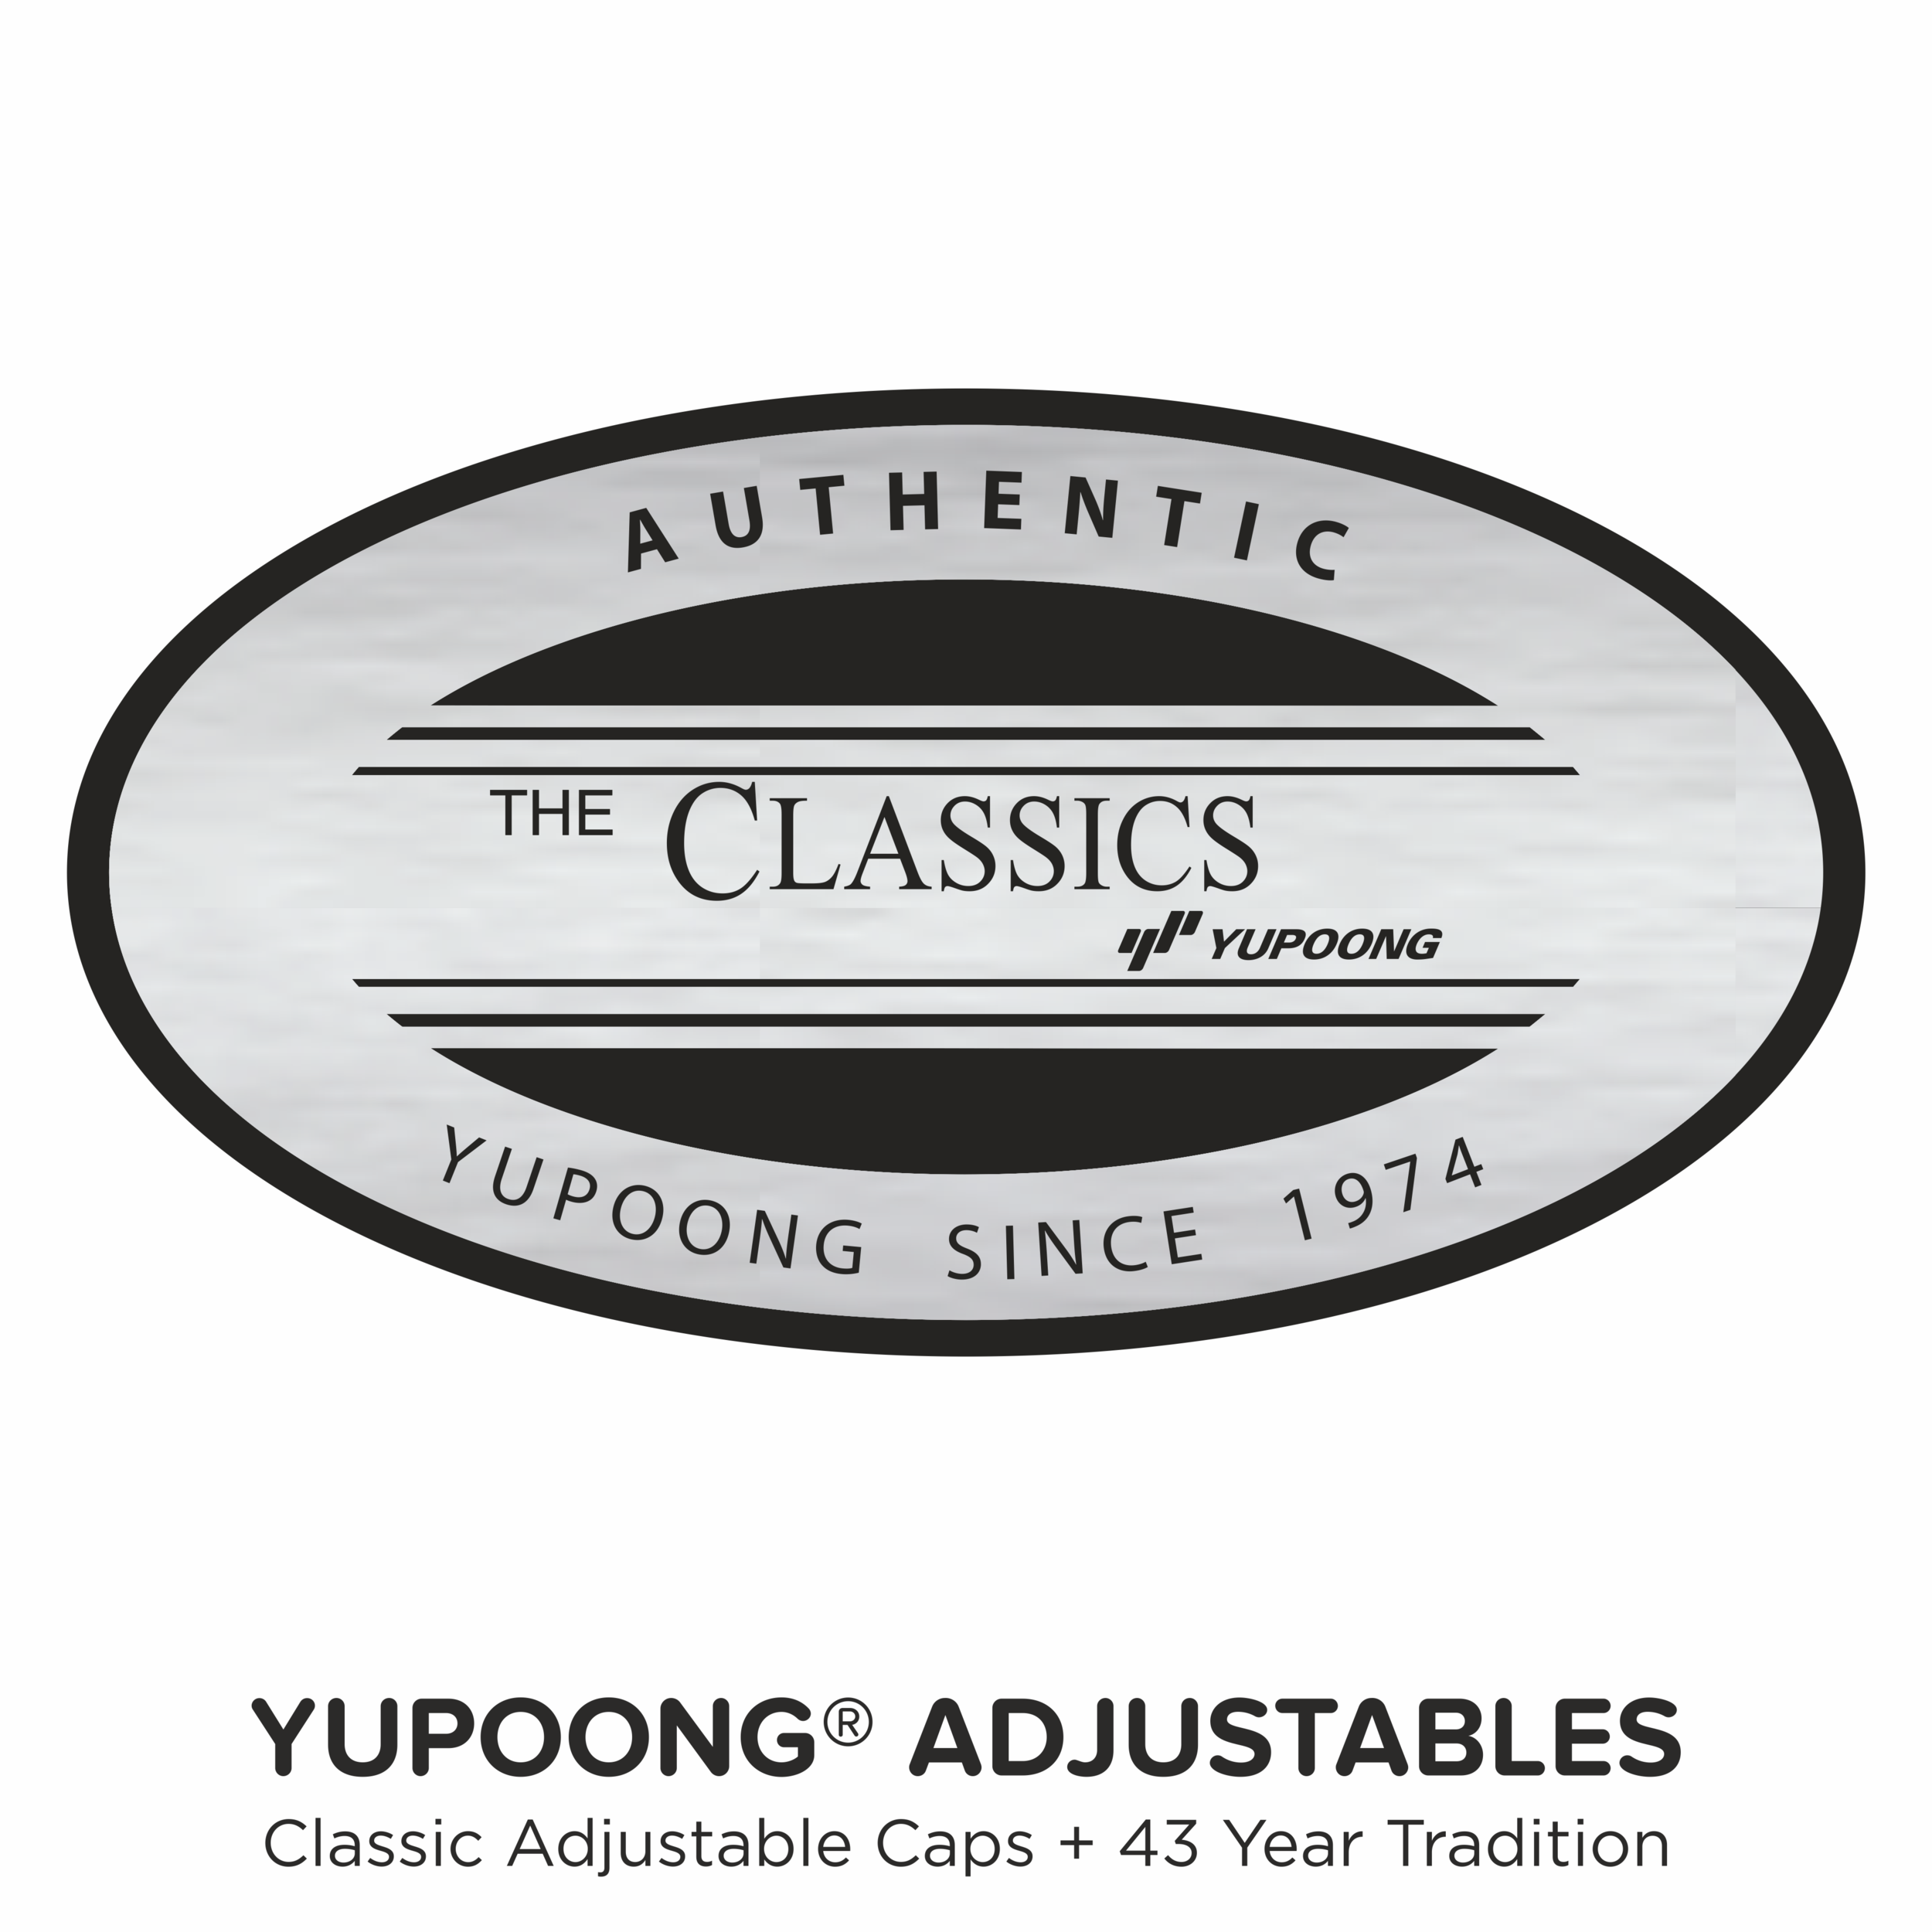 Classic Adjustables   The one sized classics come in a range of different styles and shapes with distinctive CLASSICS peak sticker, woven labels and hang tags. The caps are made from high quality cotton blend fabrics, materials and components all of which conform to international standards.  The Classics are offered in a number of styles including our world renowned Classics 6 panel Dad cap to our 4 panel jockey cap and are typically constructed to resemble the best adjustable caps in the headwear industry.